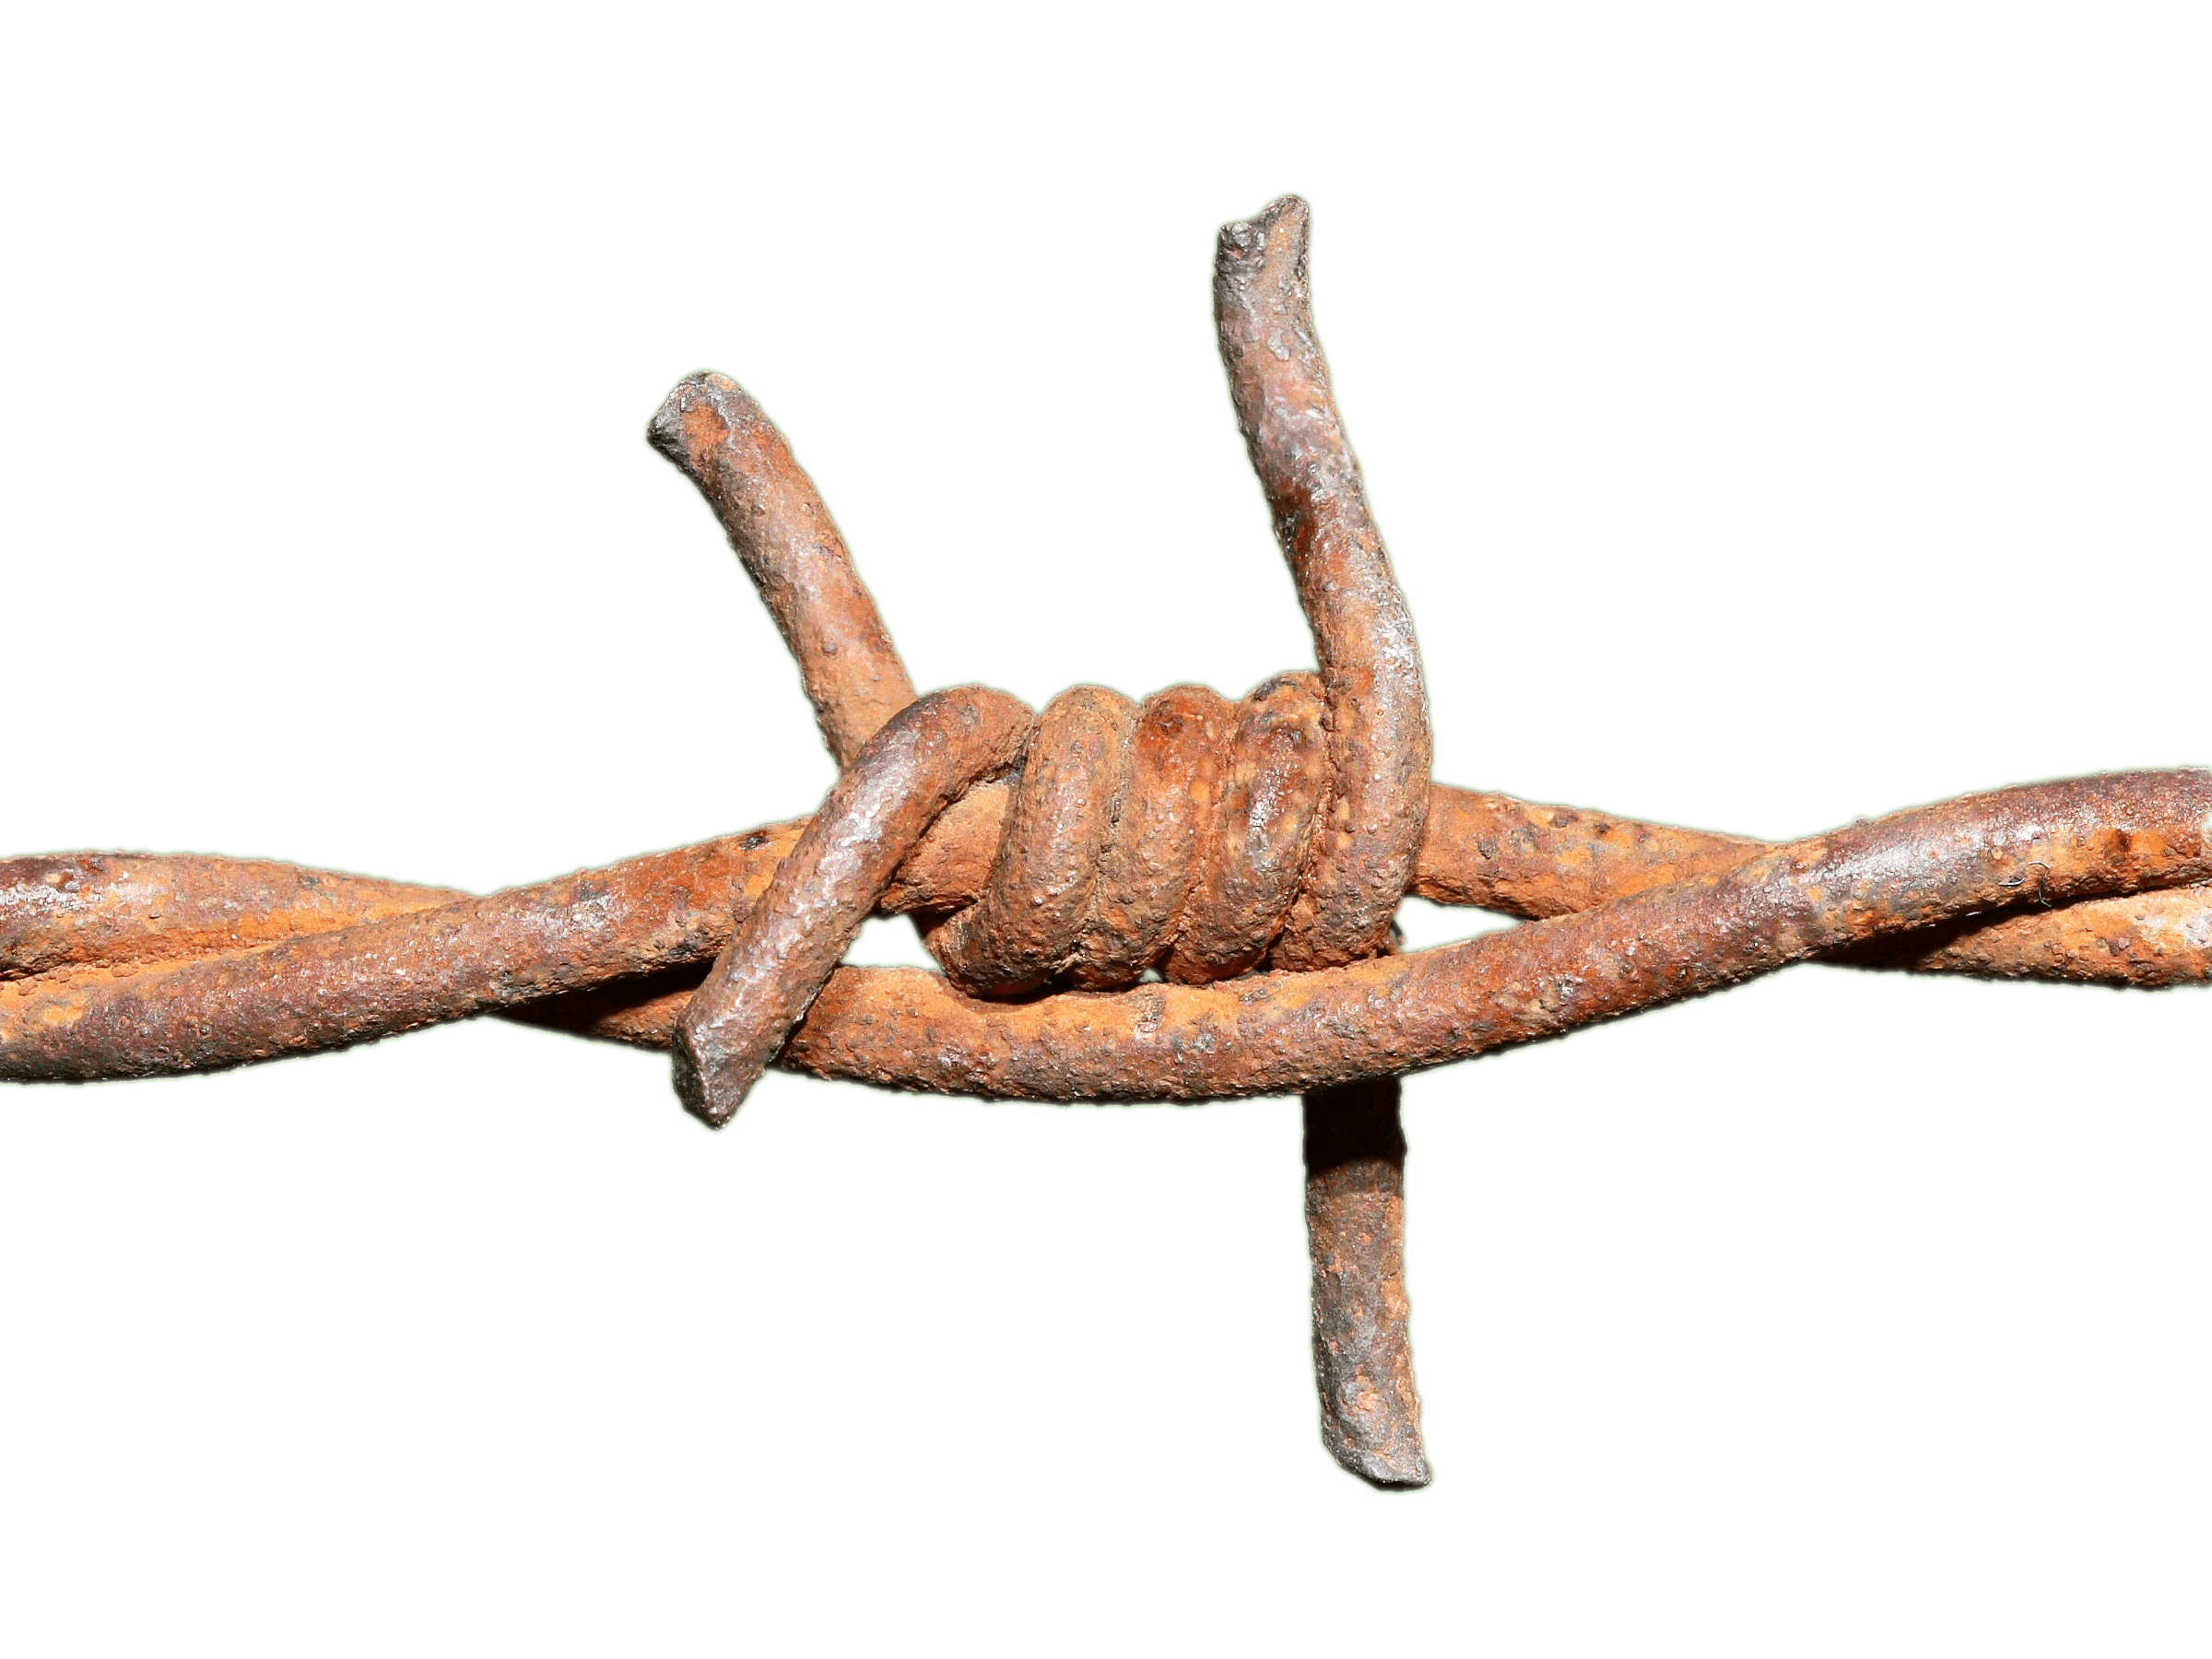 Rusty Barbed Wire Png - In additon, you can discover our ...